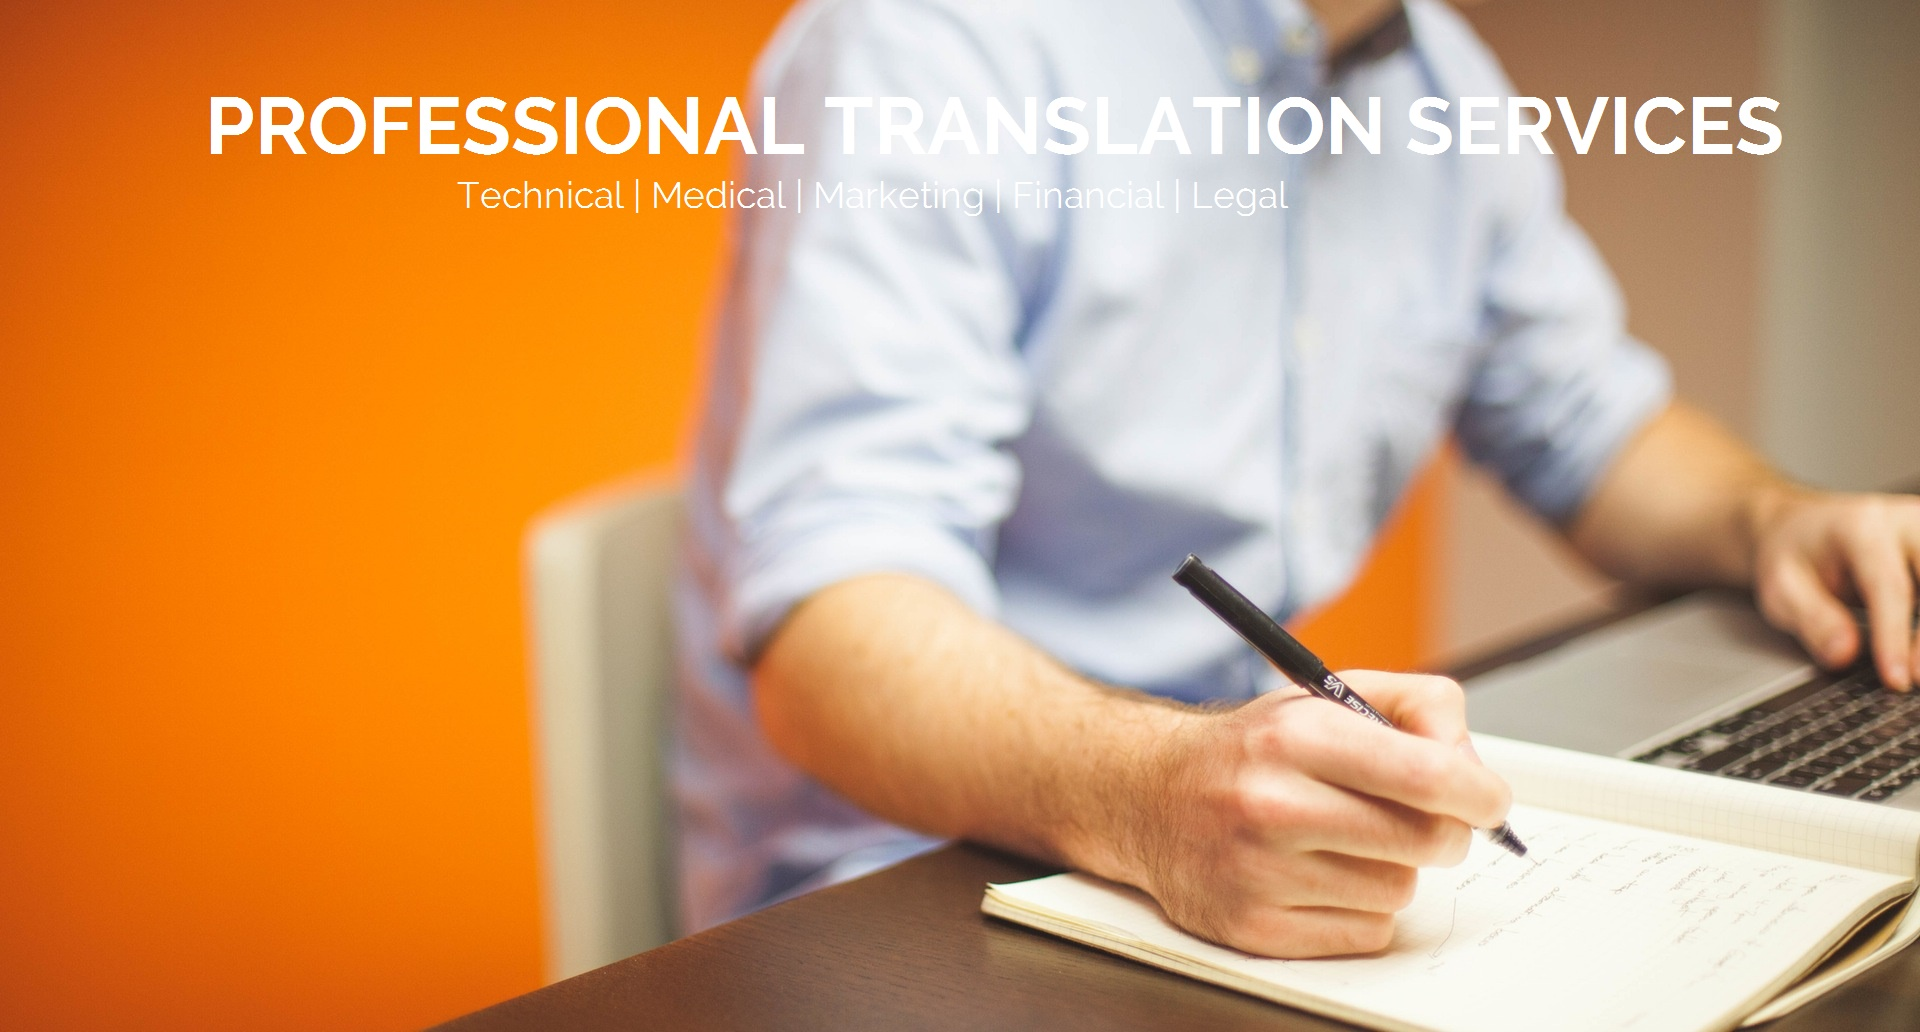 prof. translation services